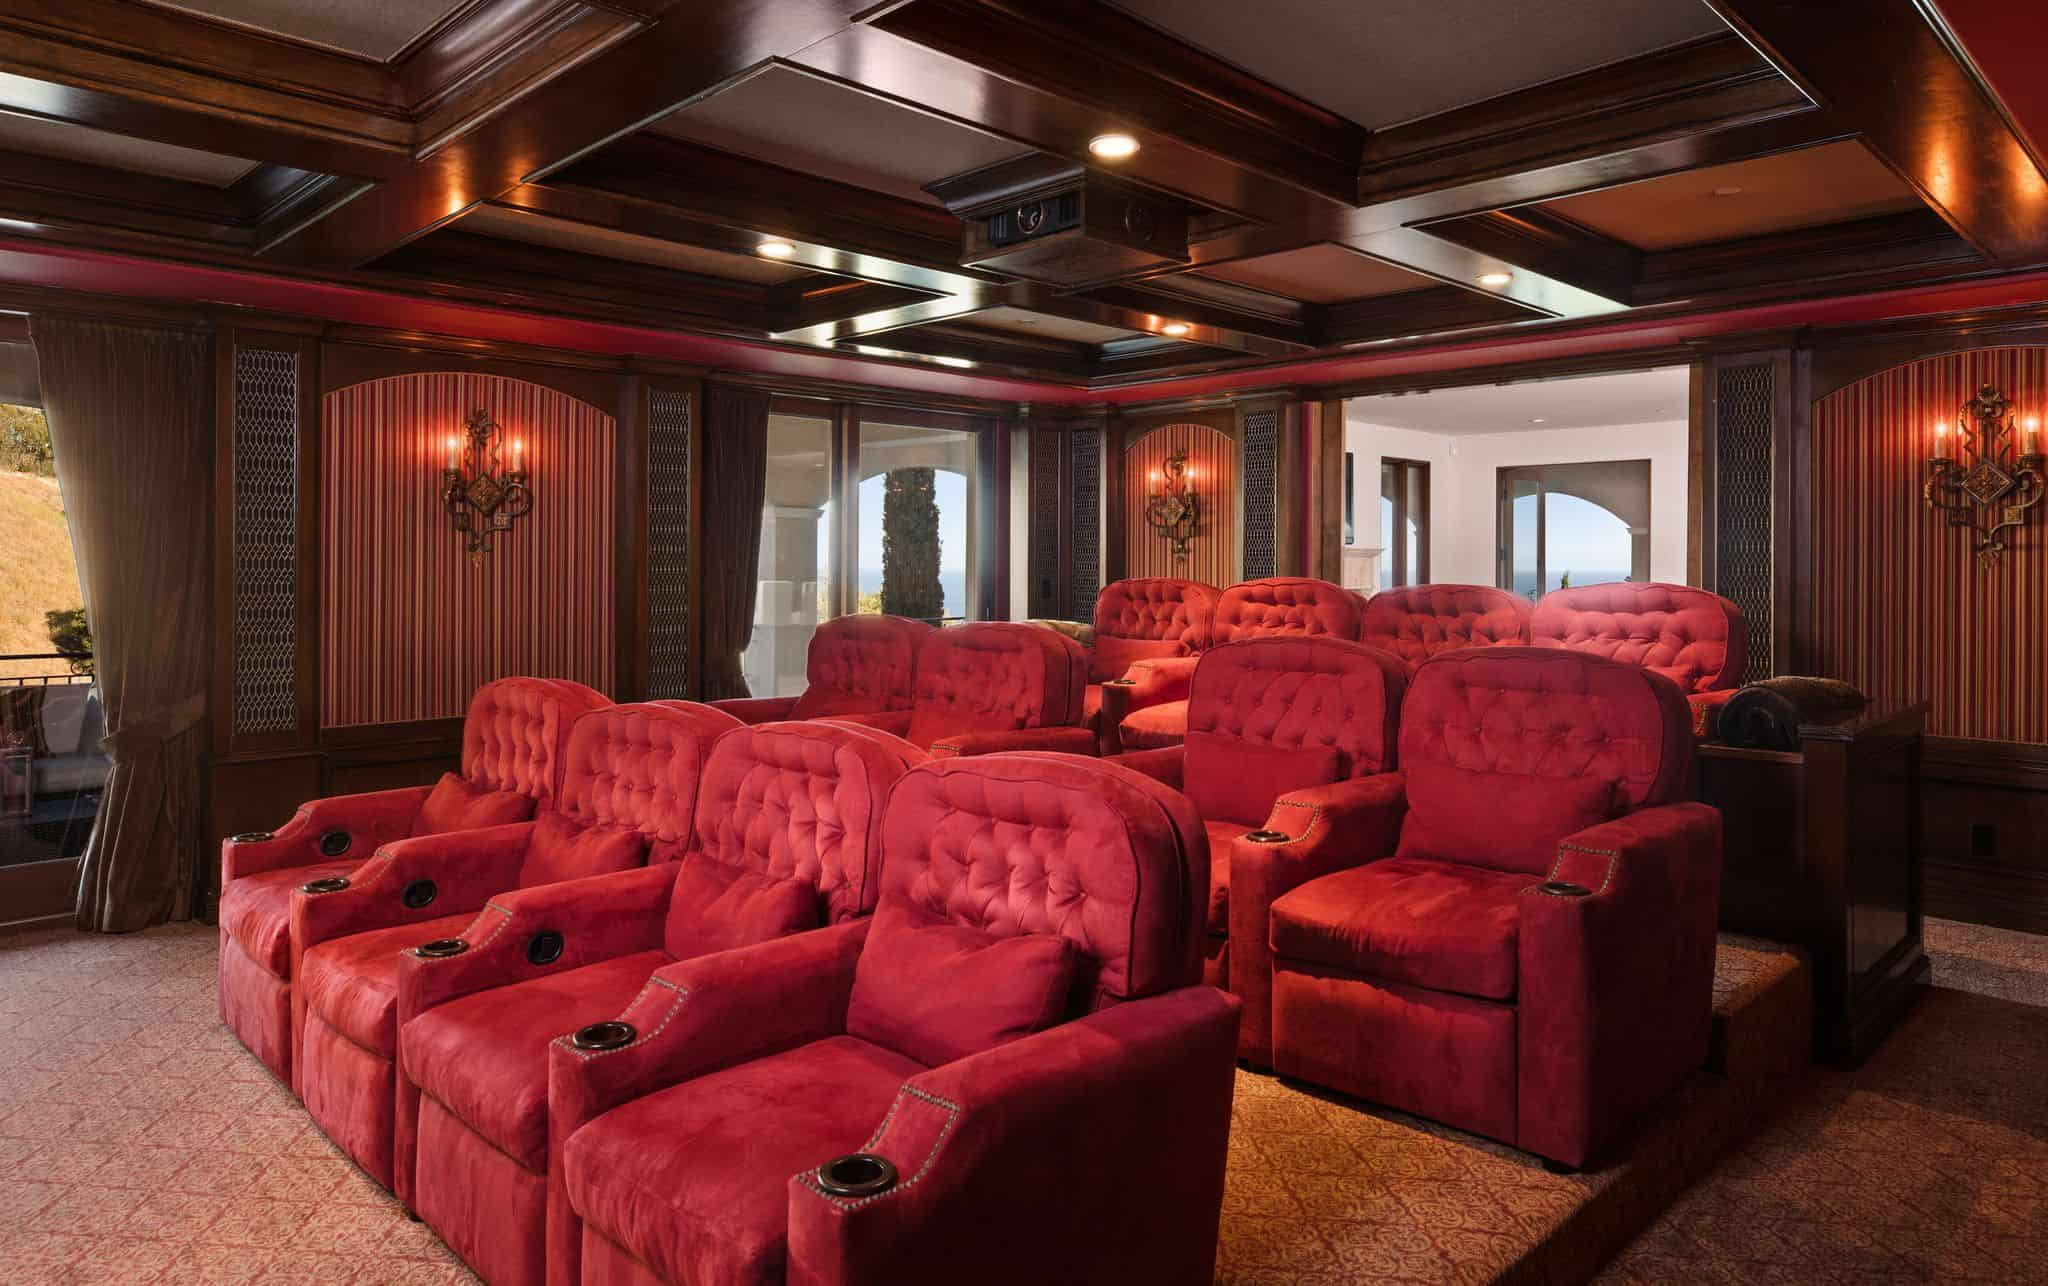 The Mansionu0027s Home Theater Features A Red Velvet Set Of Sectional Theater  Seating Perfect With The